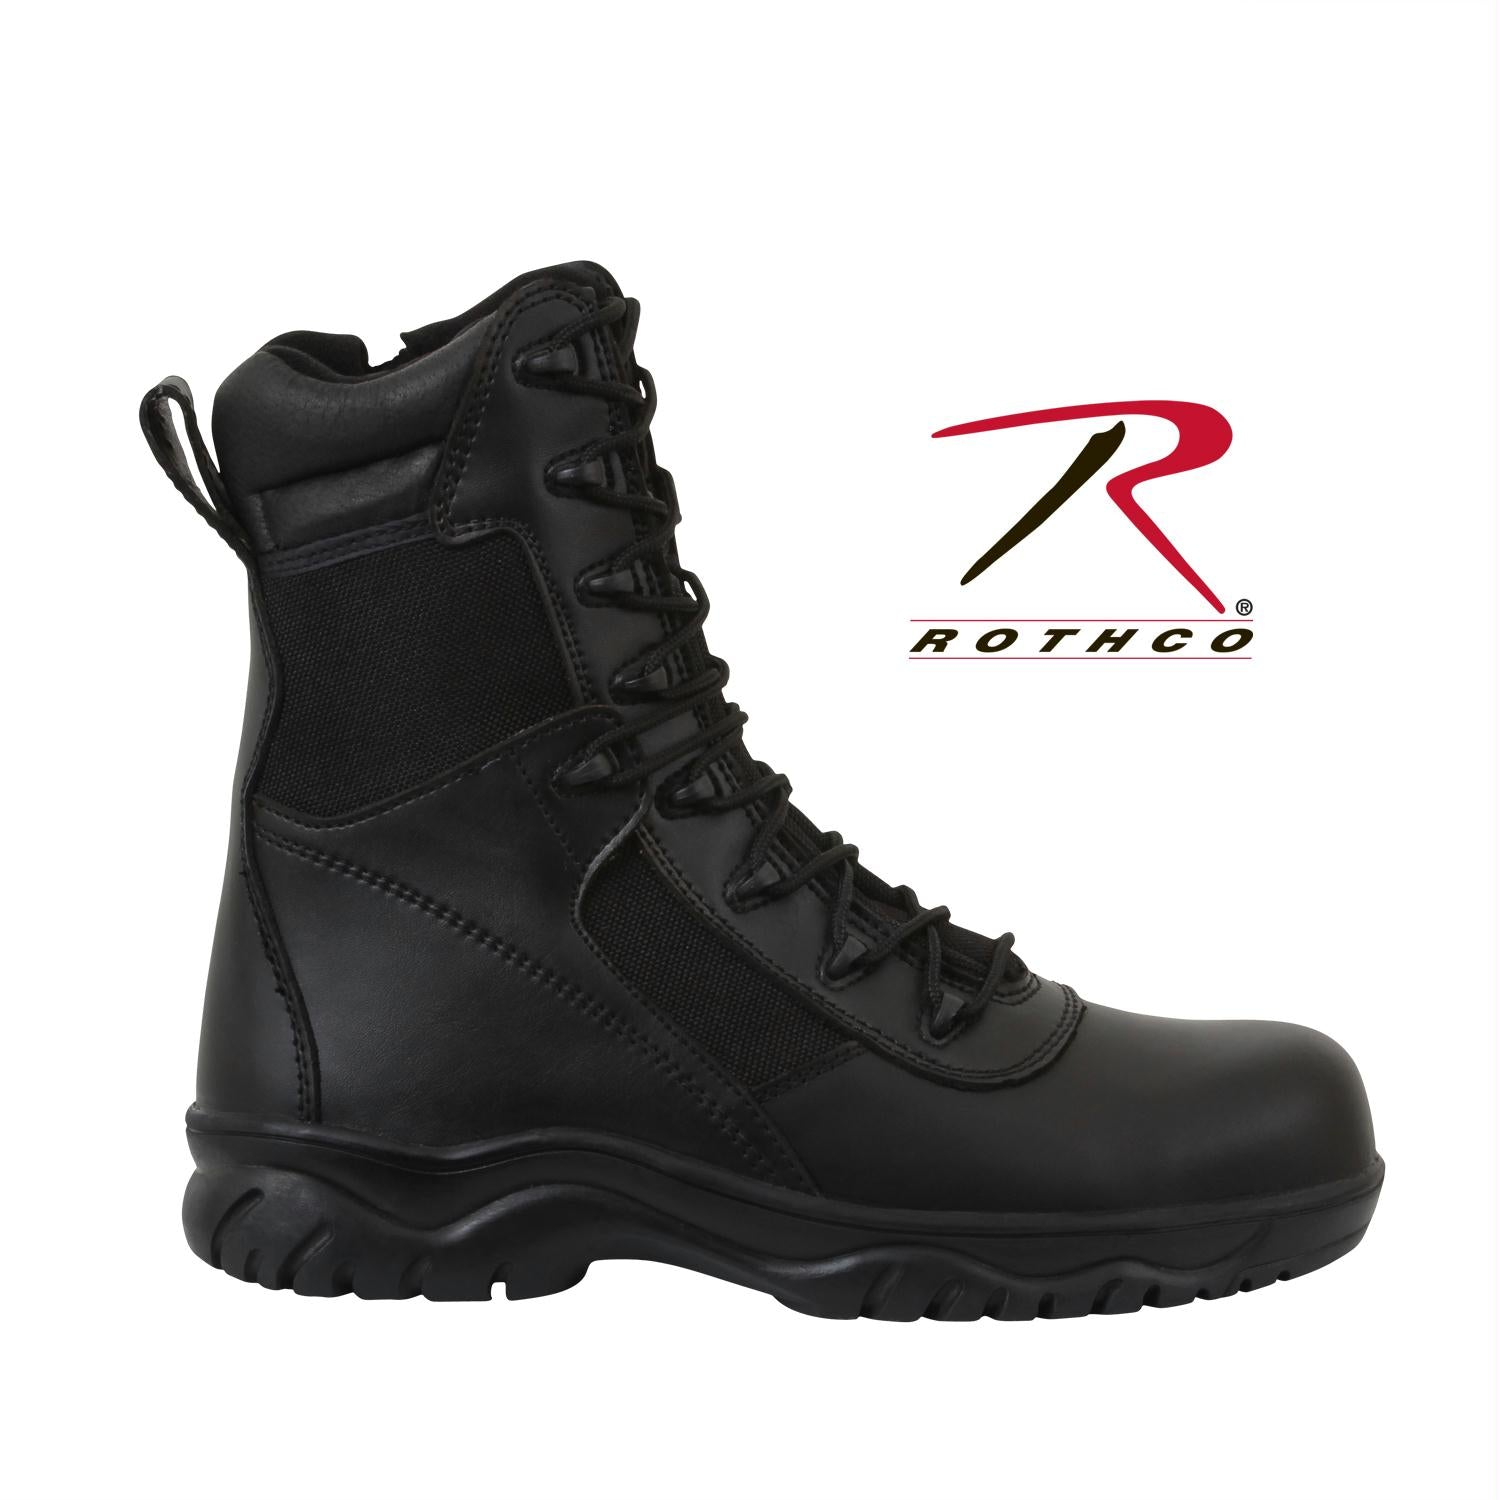 Rothco 8 Inch Forced Entry Tactical Boot With Side Zipper & Composite Toe - 8.5